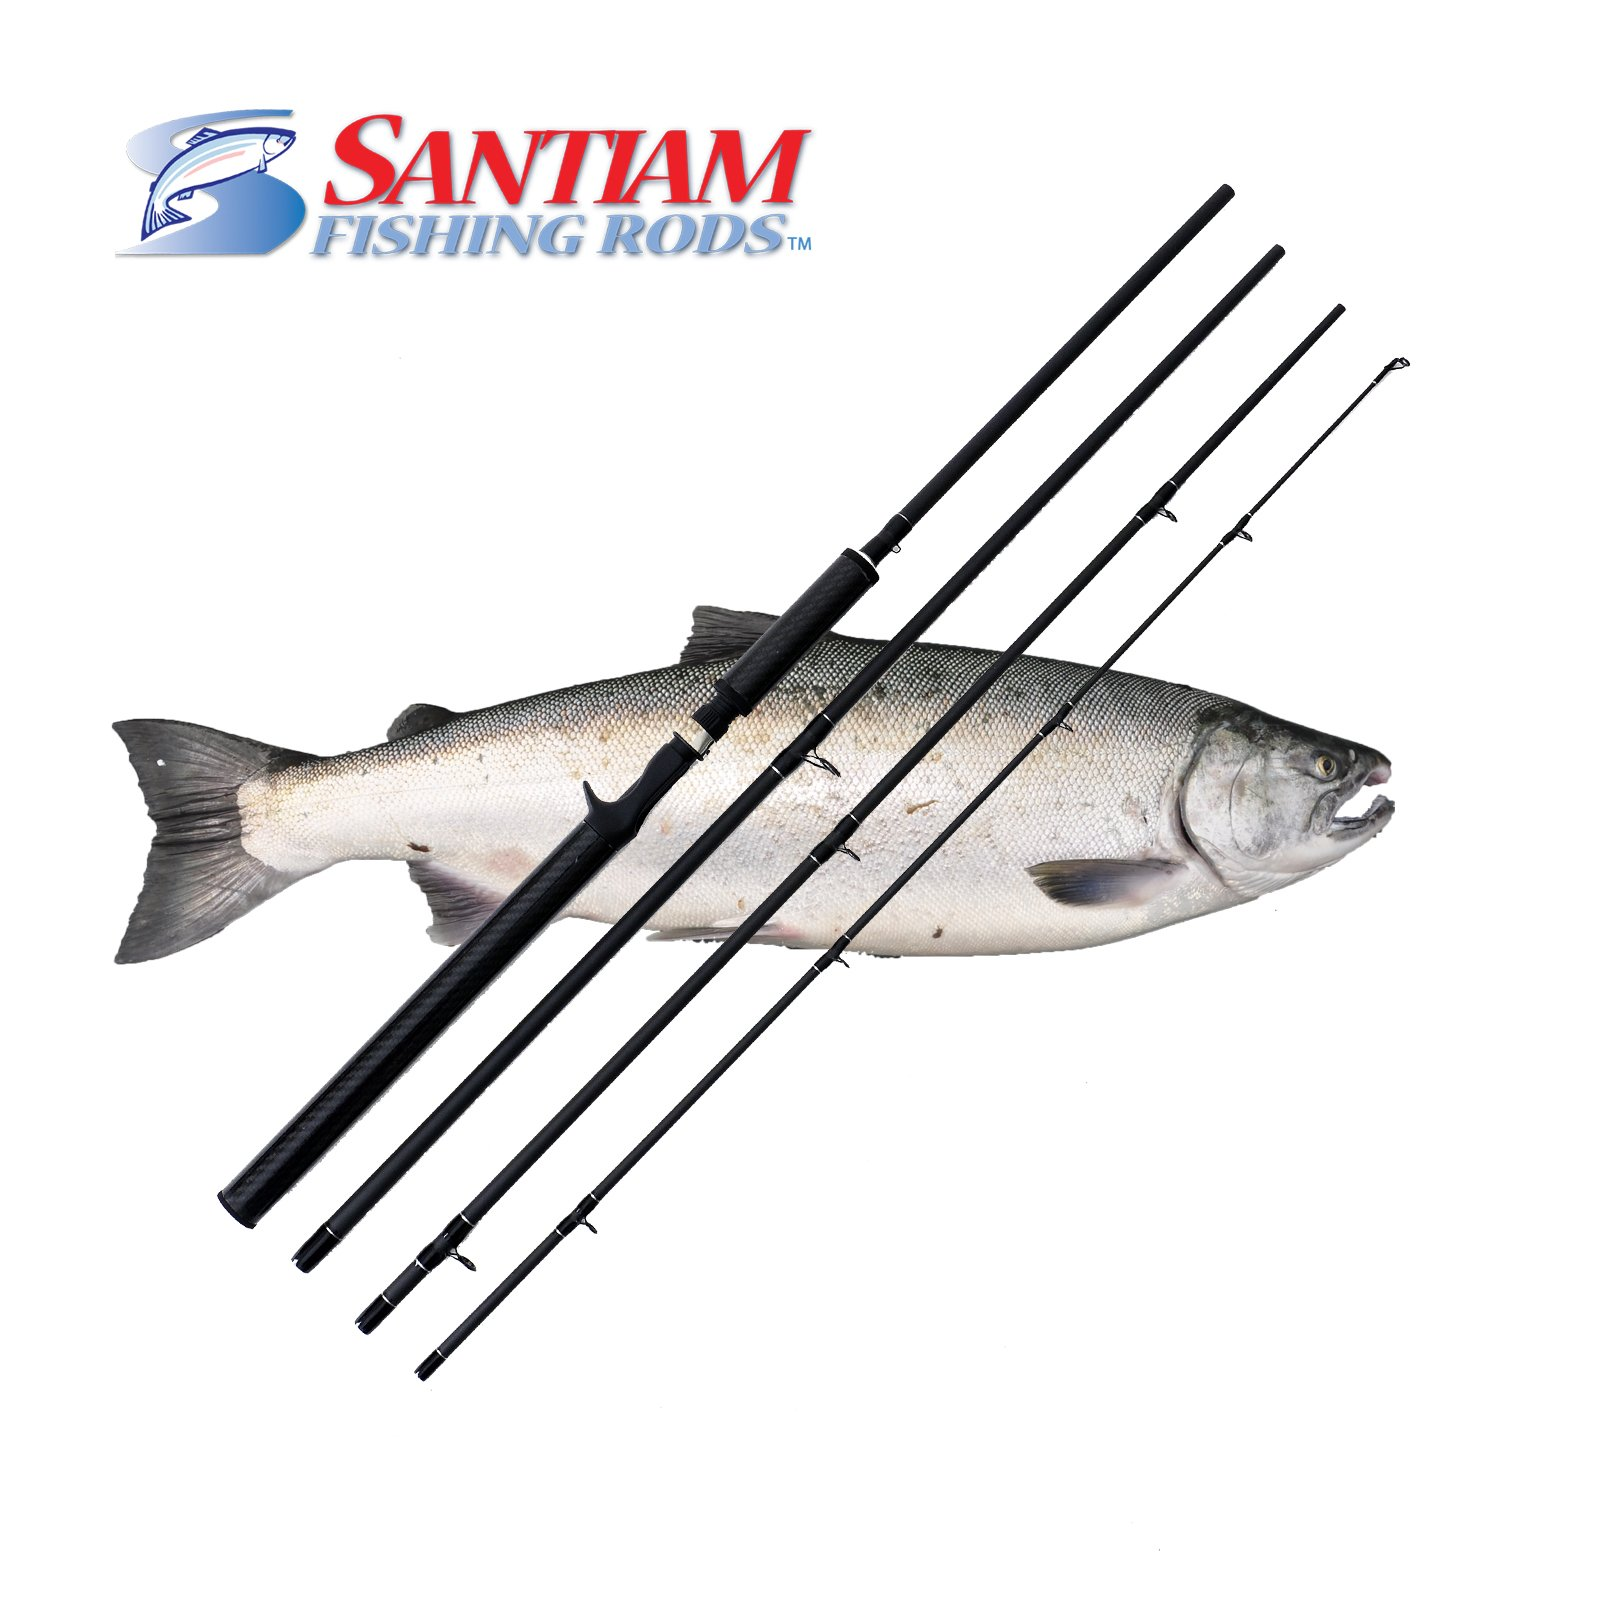 Santiam Fishing Rods 4 Piece 10'6'' 15-40lb Graphite Travel Casting/Trolling Rod w/Carbon Handle